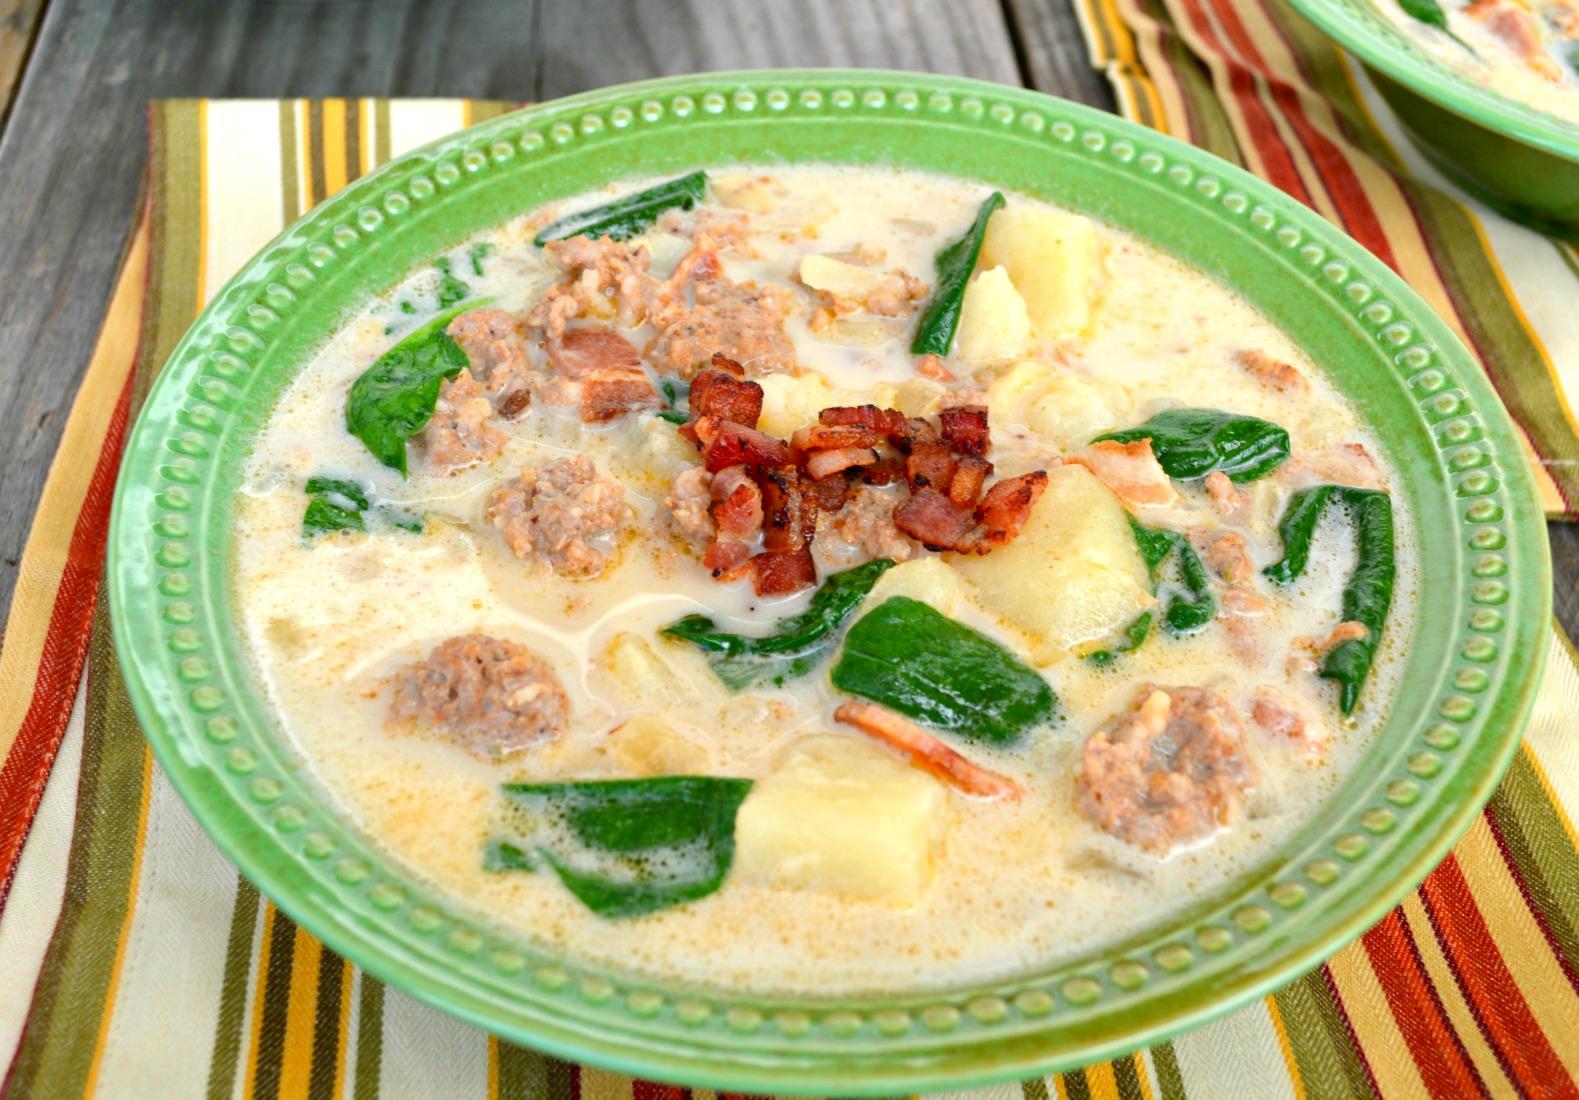 This Zuppa Toscana Recipe takes only 30 minutes to make and is comfort food at its finest.